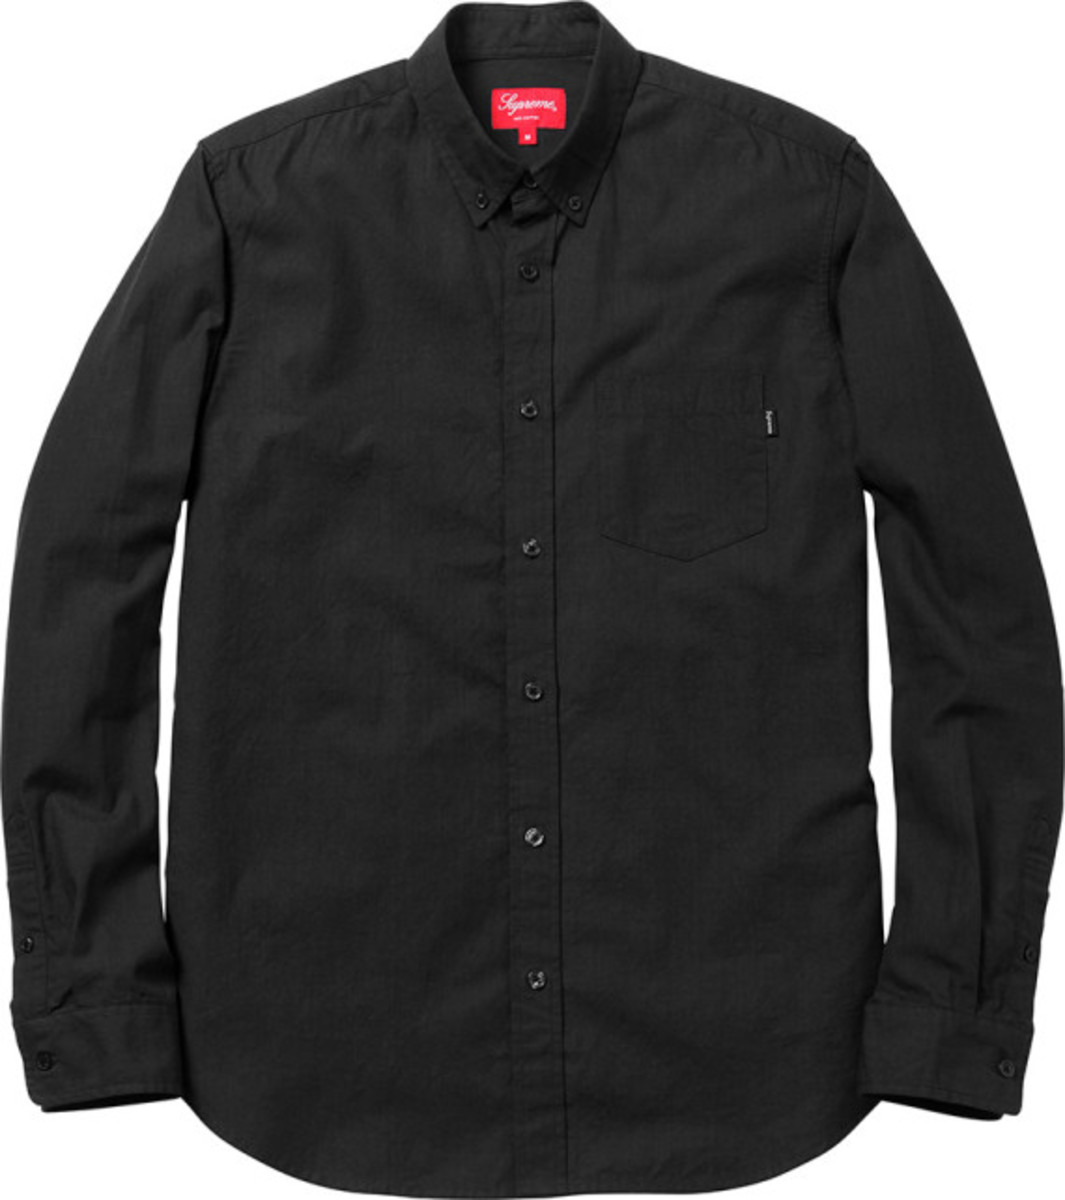 supreme-fall-winter-2013-apparel-collection-072